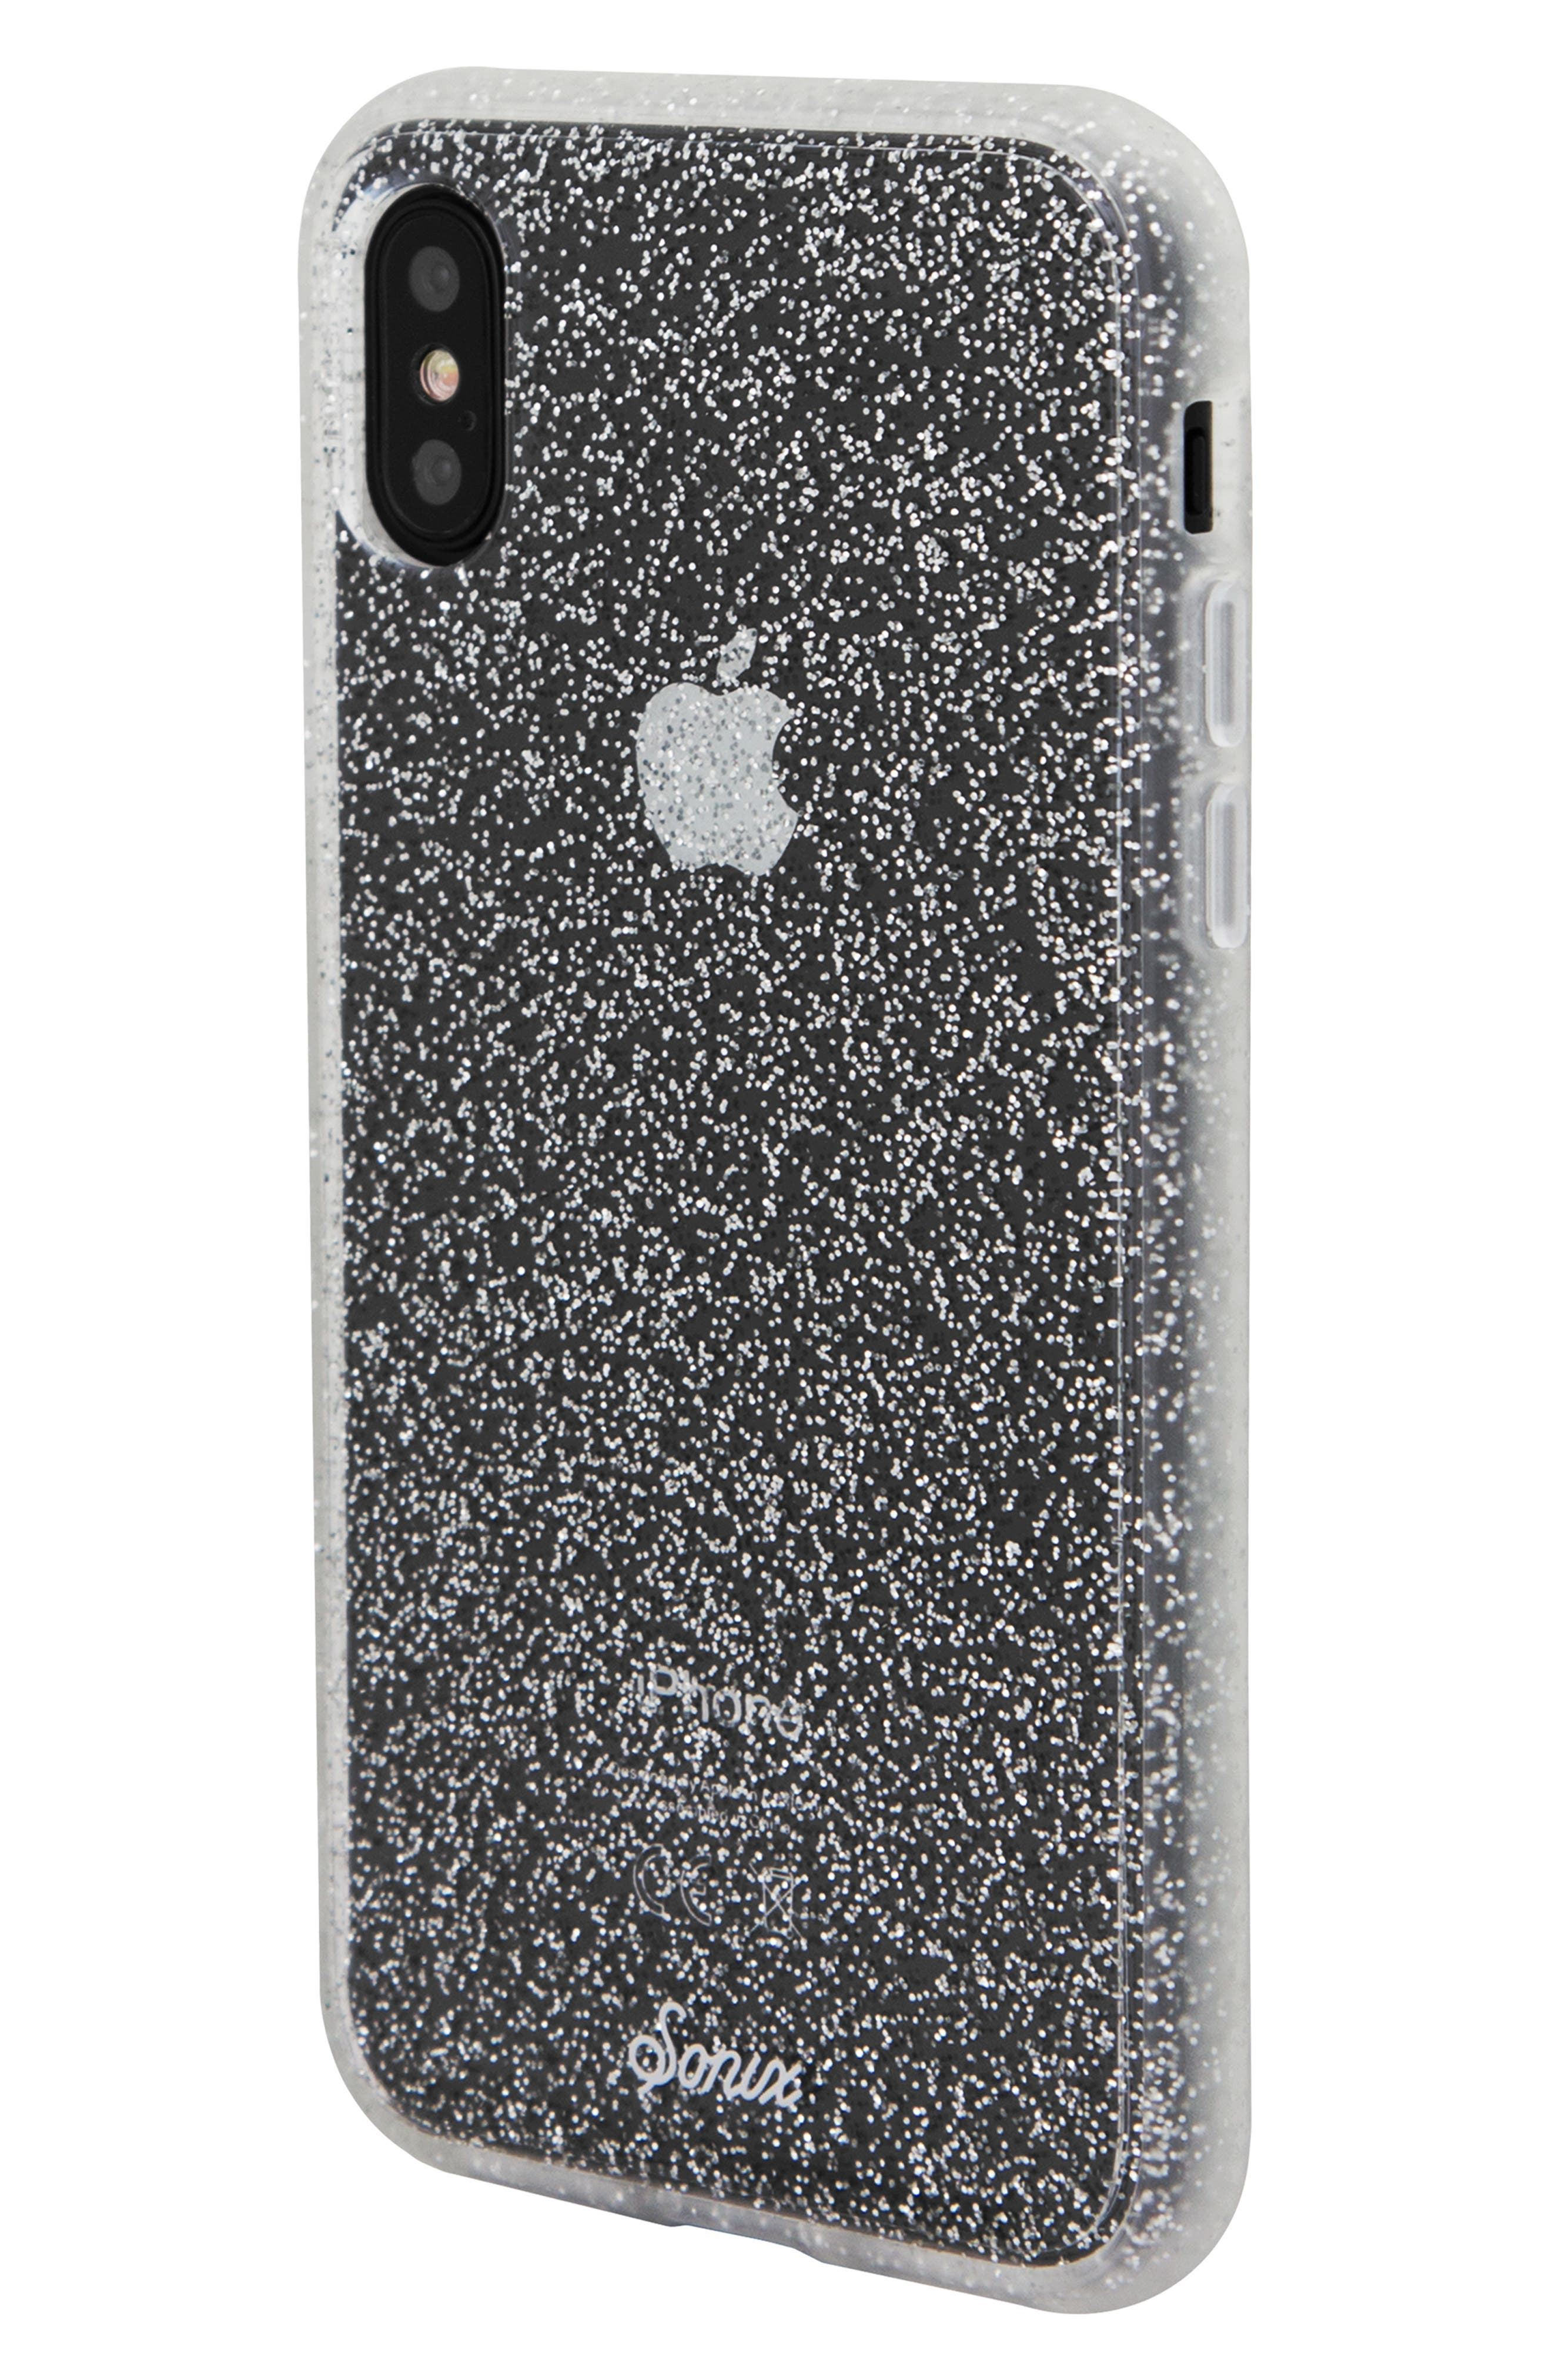 Glitter iPhone X/Xs, XR & X Max Case,                             Alternate thumbnail 2, color,                             040